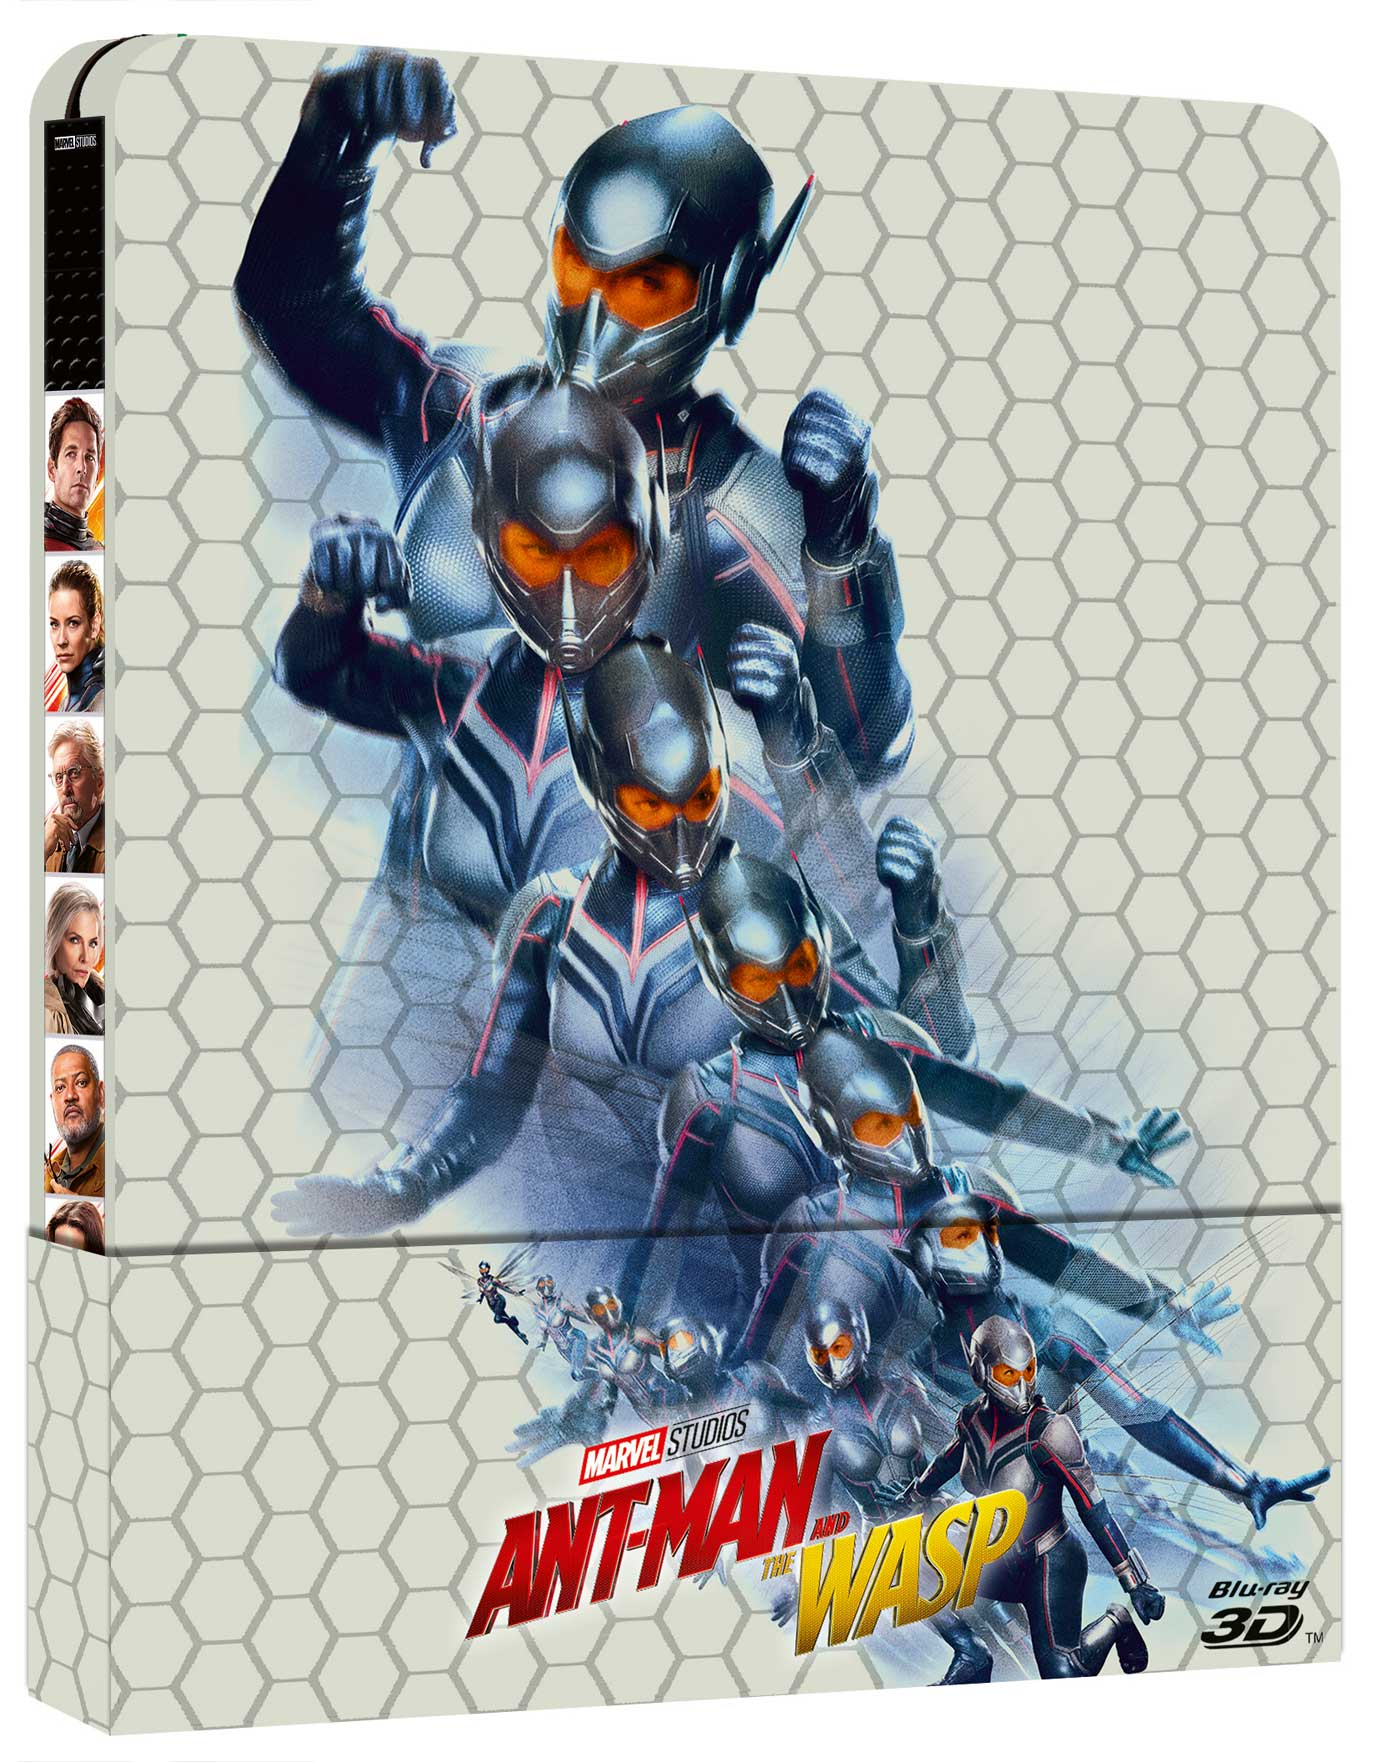 ANT-MAN AND THE WASP (3D) (BLU-RAY 3D+BLU-RAY) (LTD STEELBOOK)